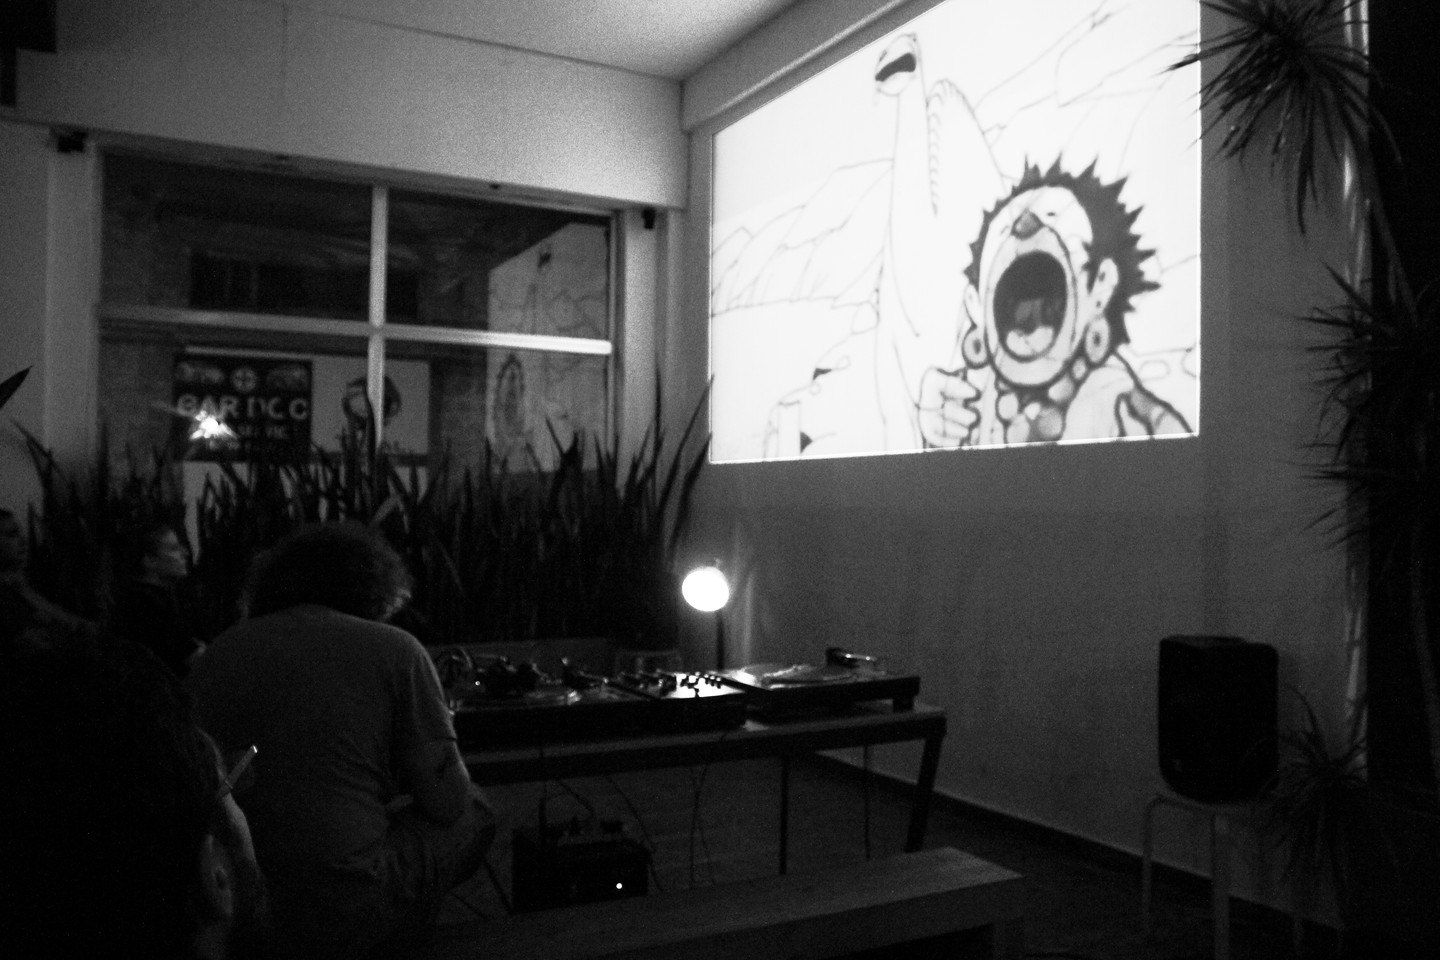 Celebrating the International Animation Day at the Ananas8bit Coffee with Pan, Whirl-Dos and Laurie Isle of the Honest Electronics collective on the 28th of October.